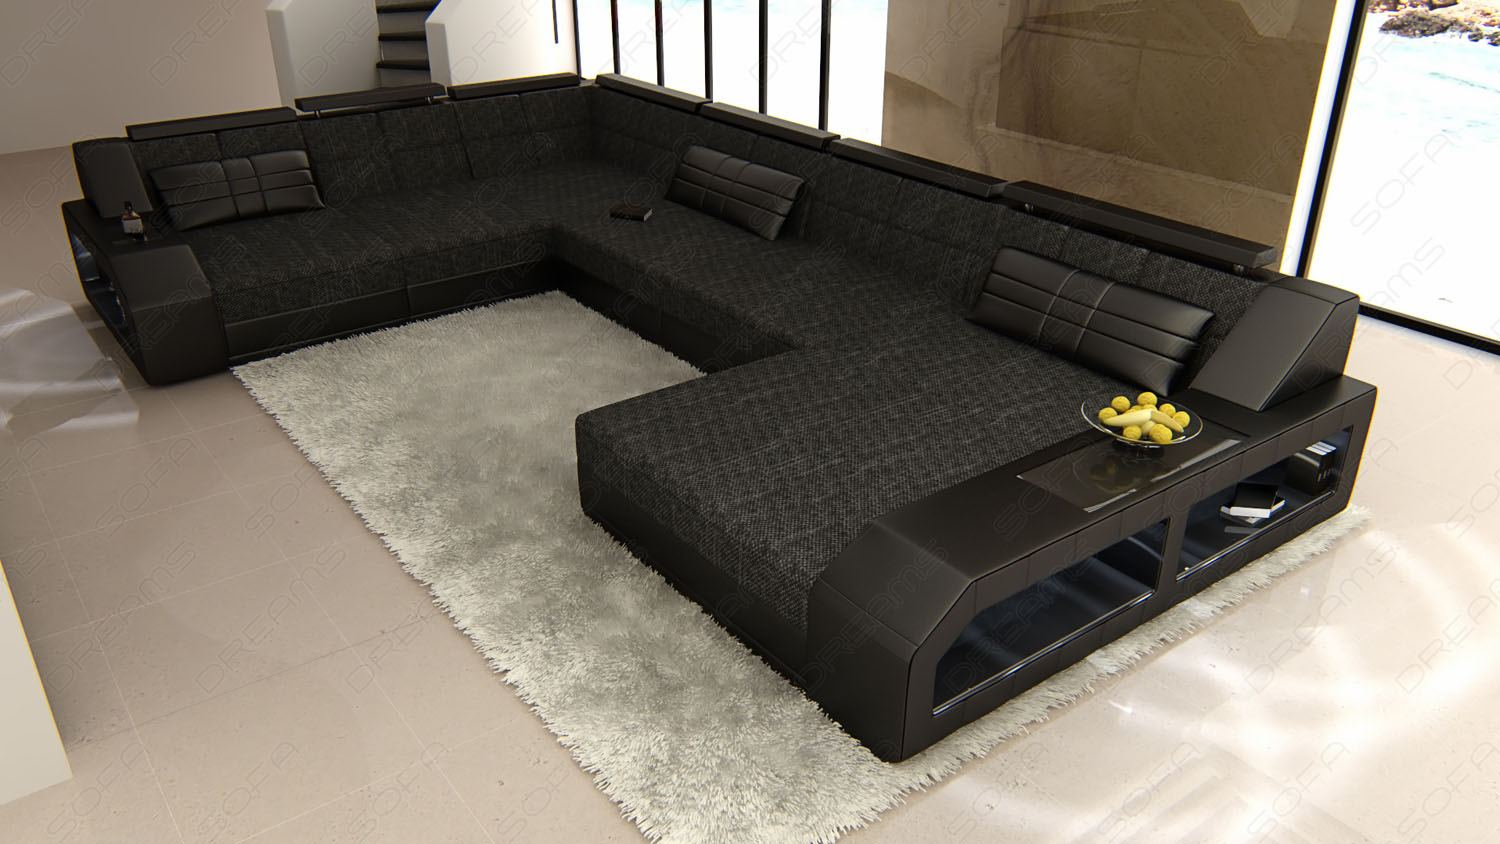 fabric sectional design sofa matera xxl sofa with led lights colour selection ebay. Black Bedroom Furniture Sets. Home Design Ideas